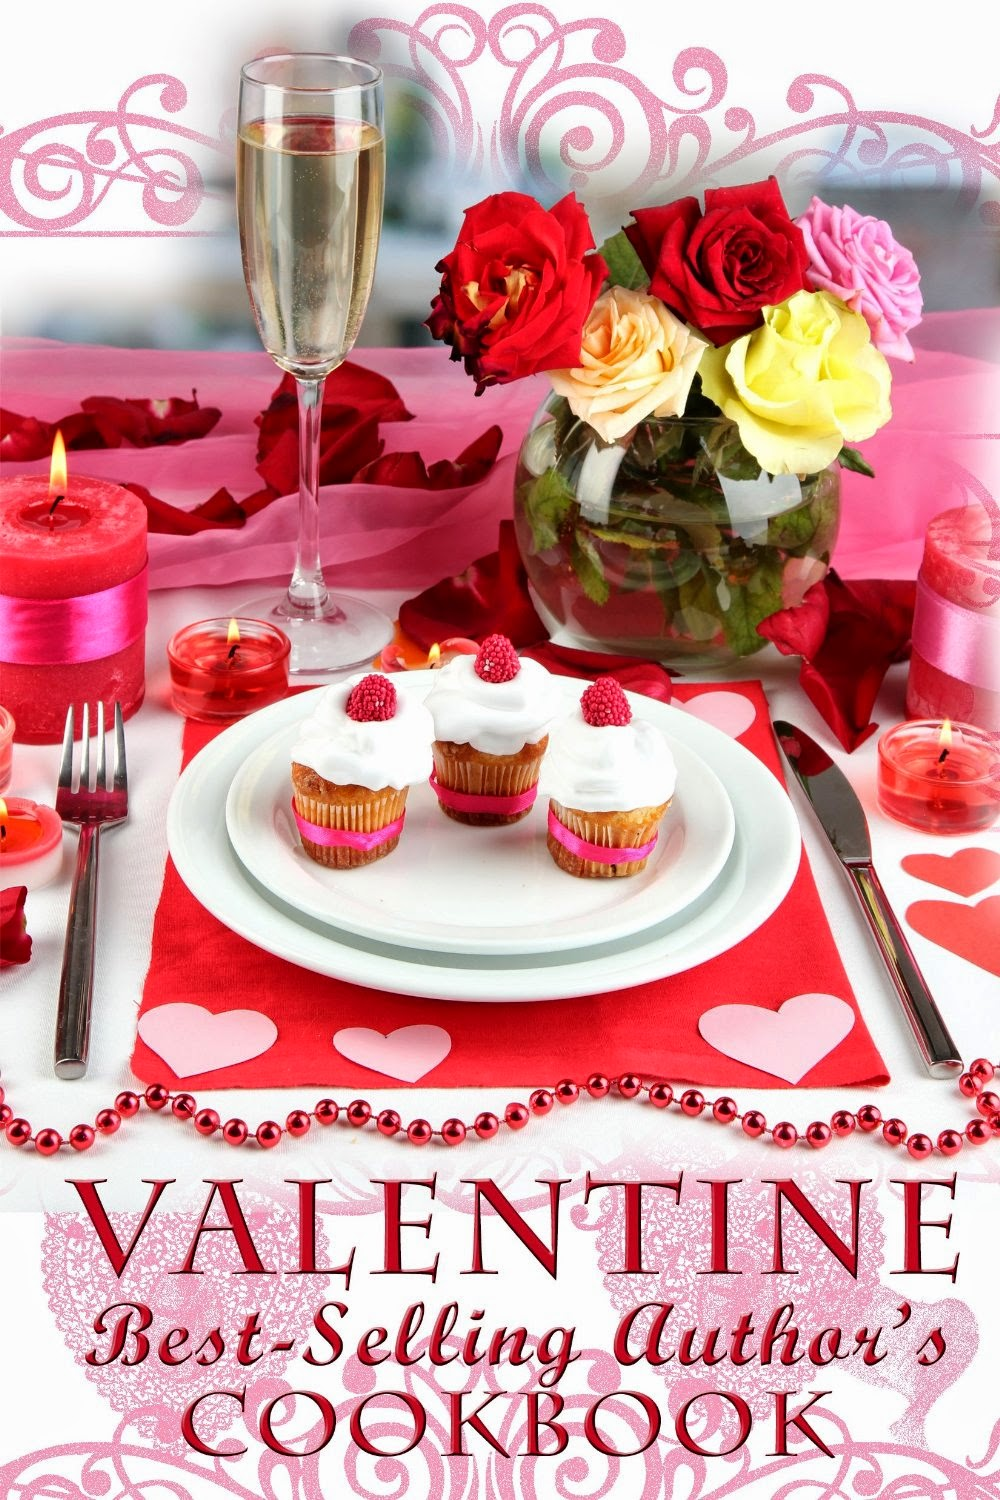 http://www.amazon.com/Valentine-Best-Selling-Authors-Cookbook-Sharon-ebook/dp/B00S74S4FE/